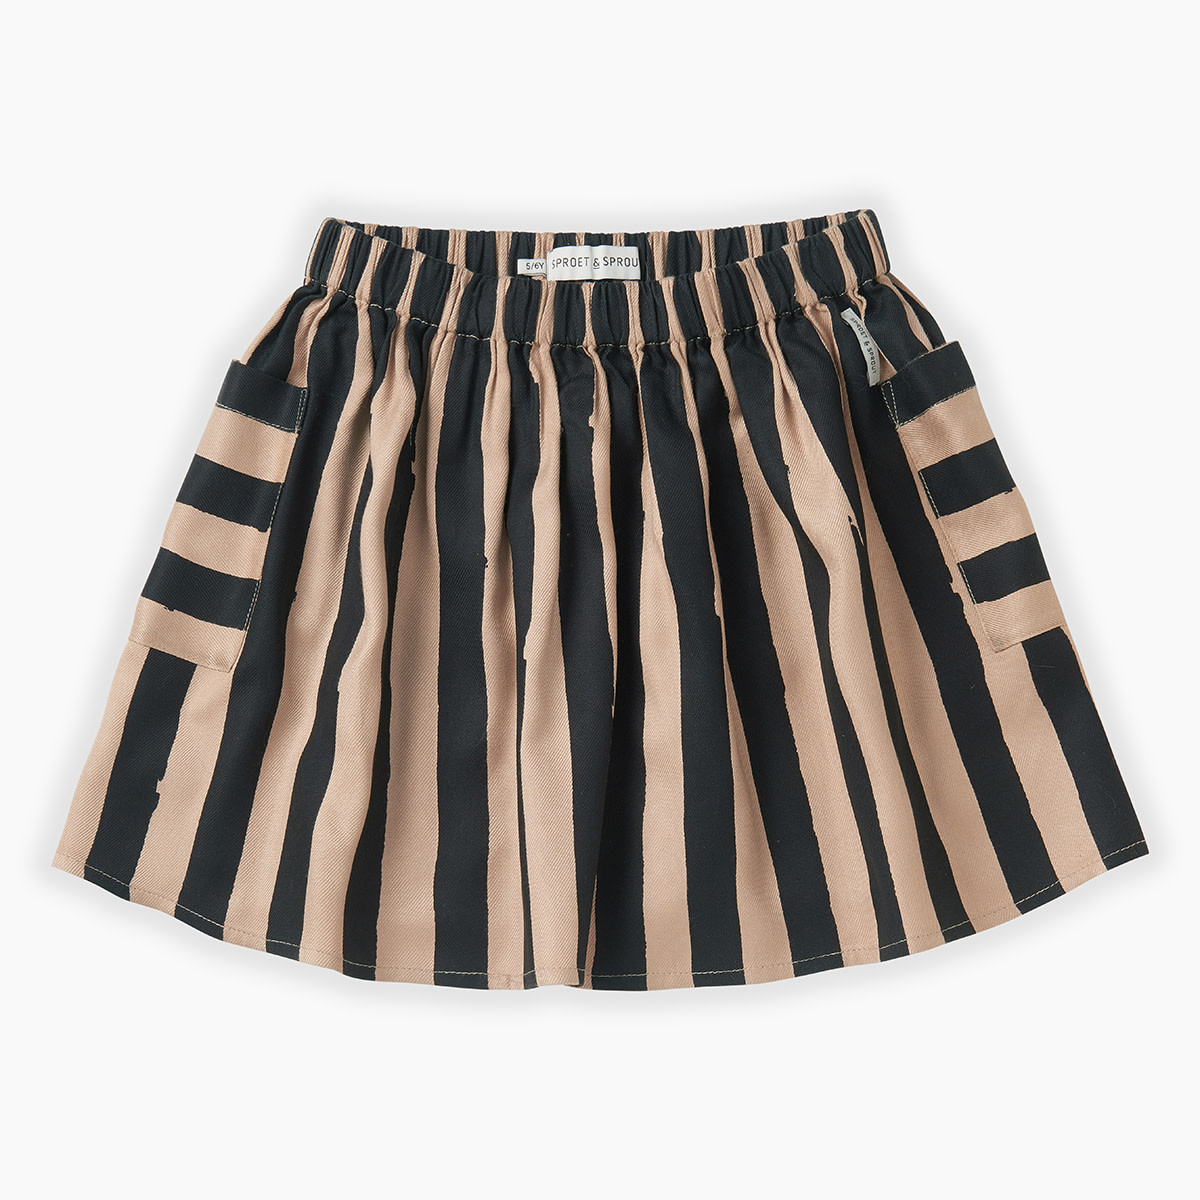 Sproet & Sprout Skirt painted stripe